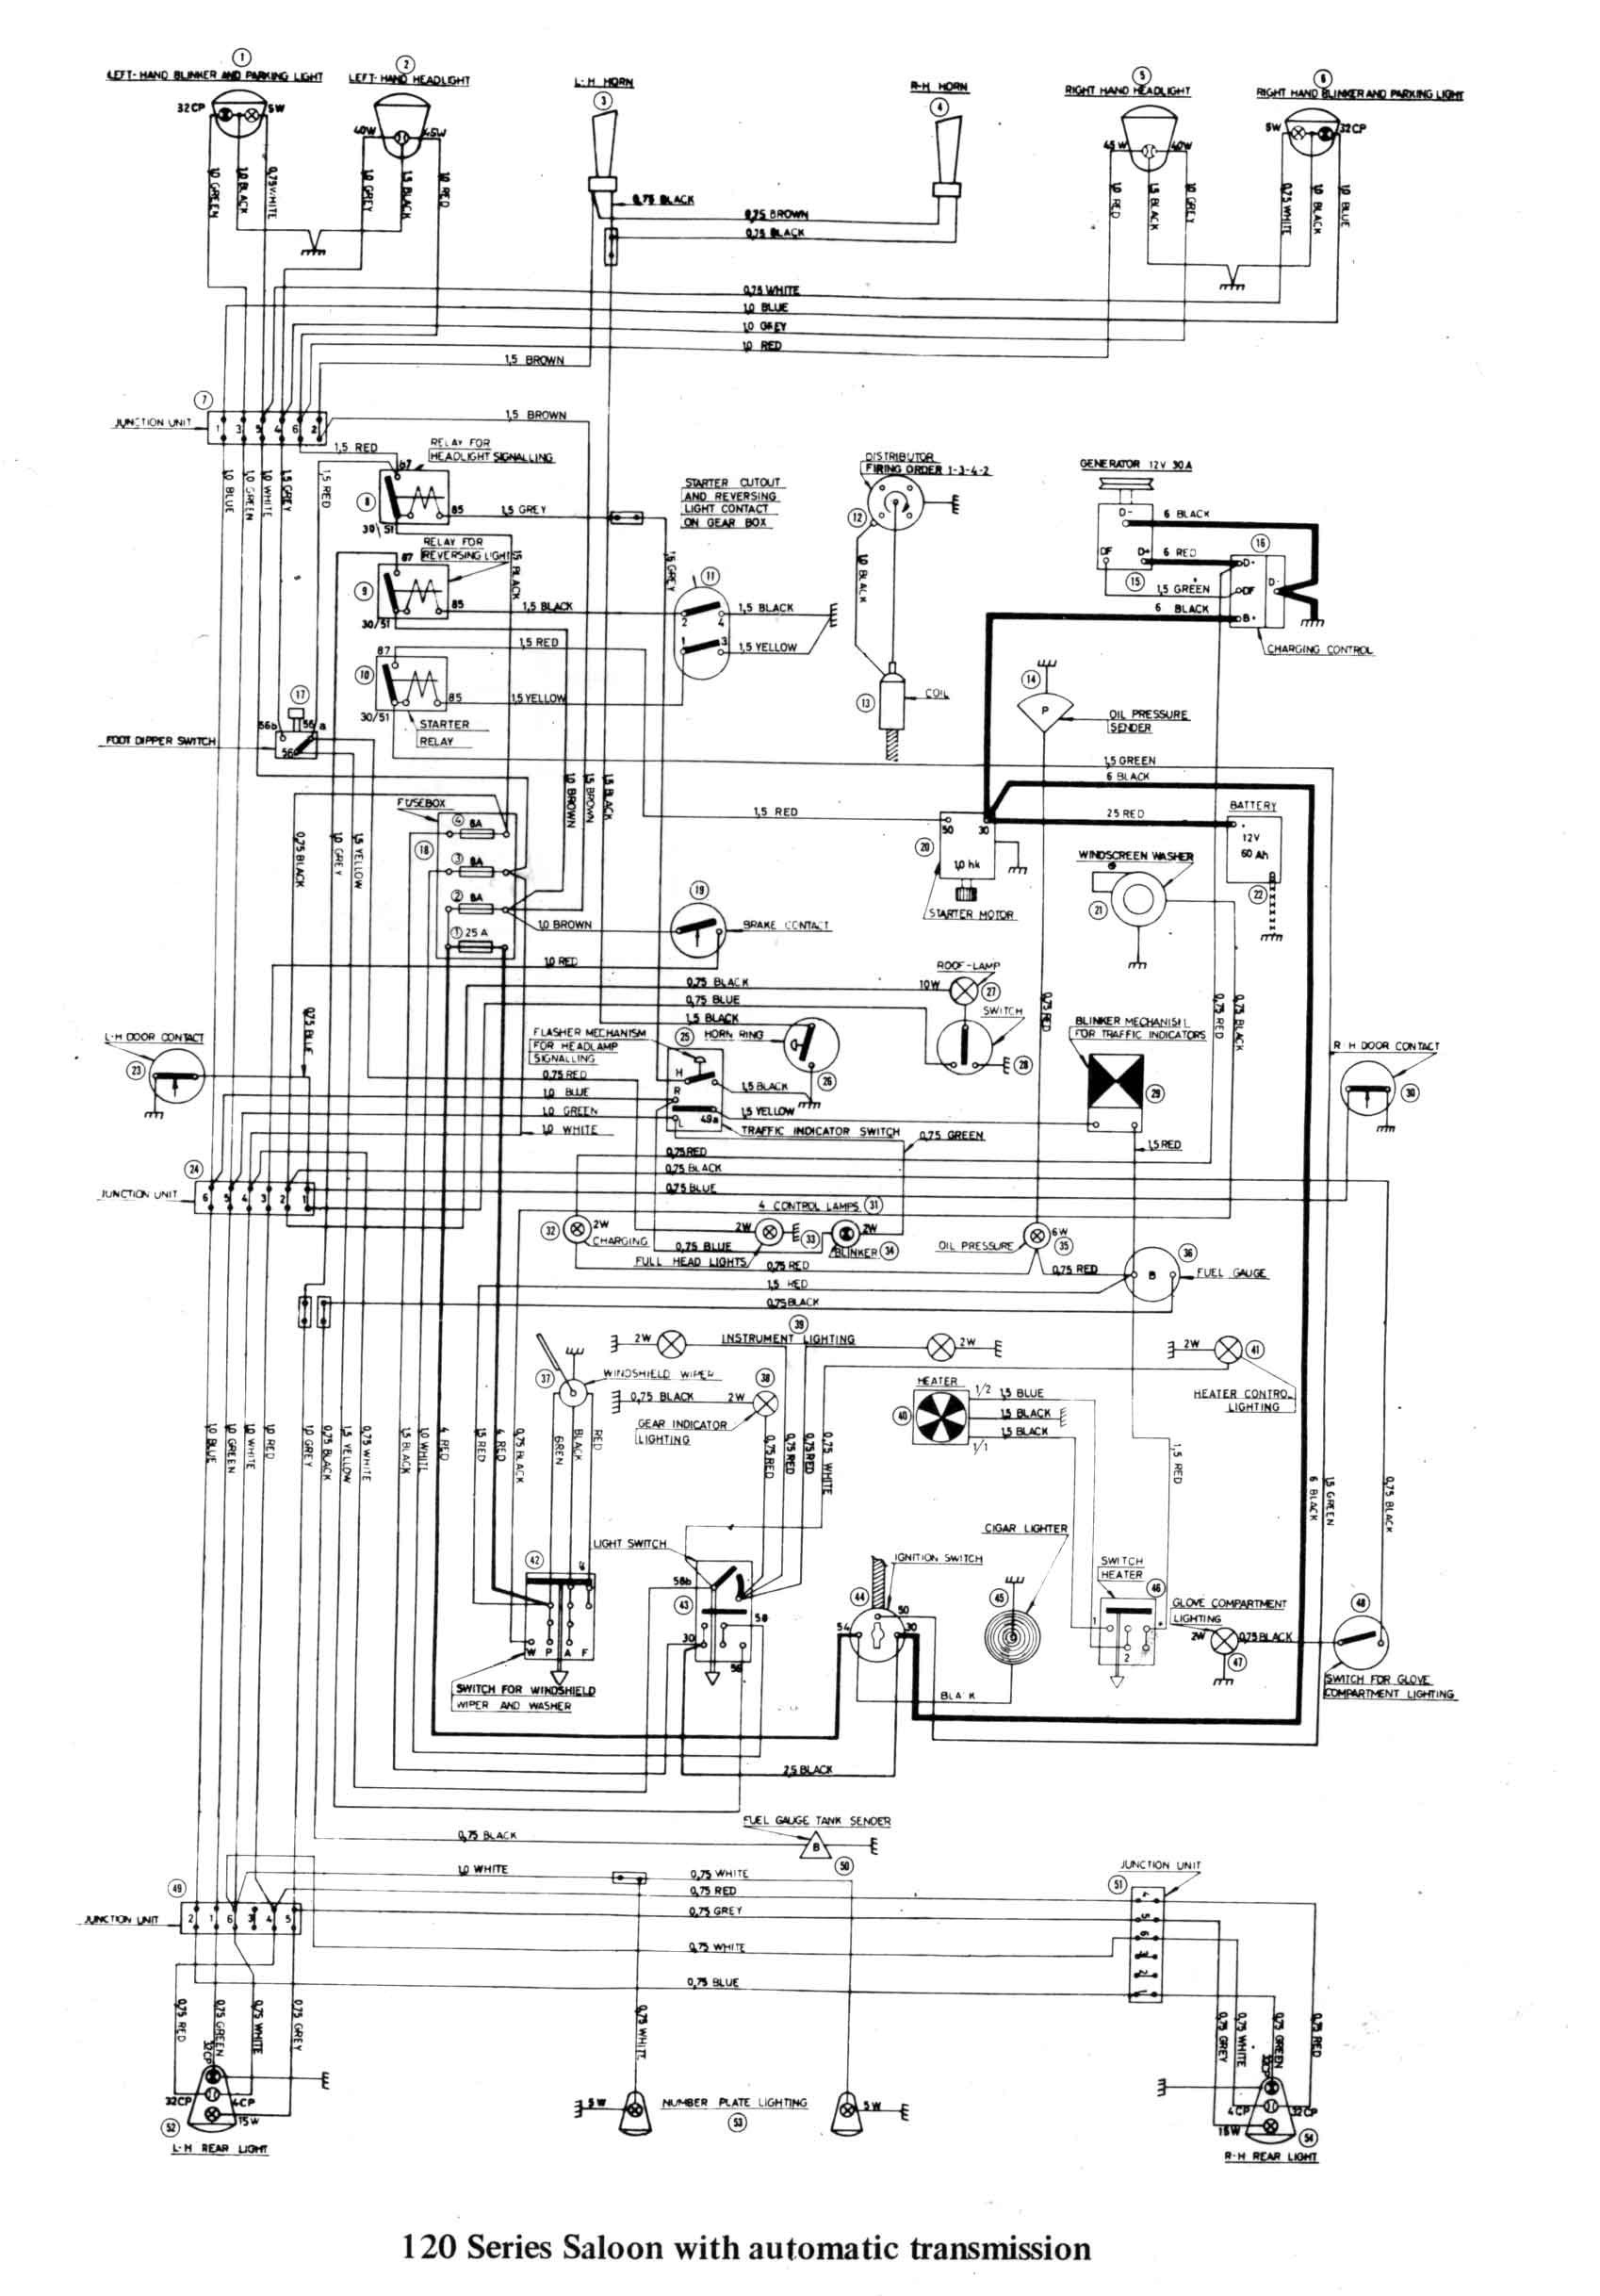 Ch613 Mack Mack Truck Fuse Box Diagram